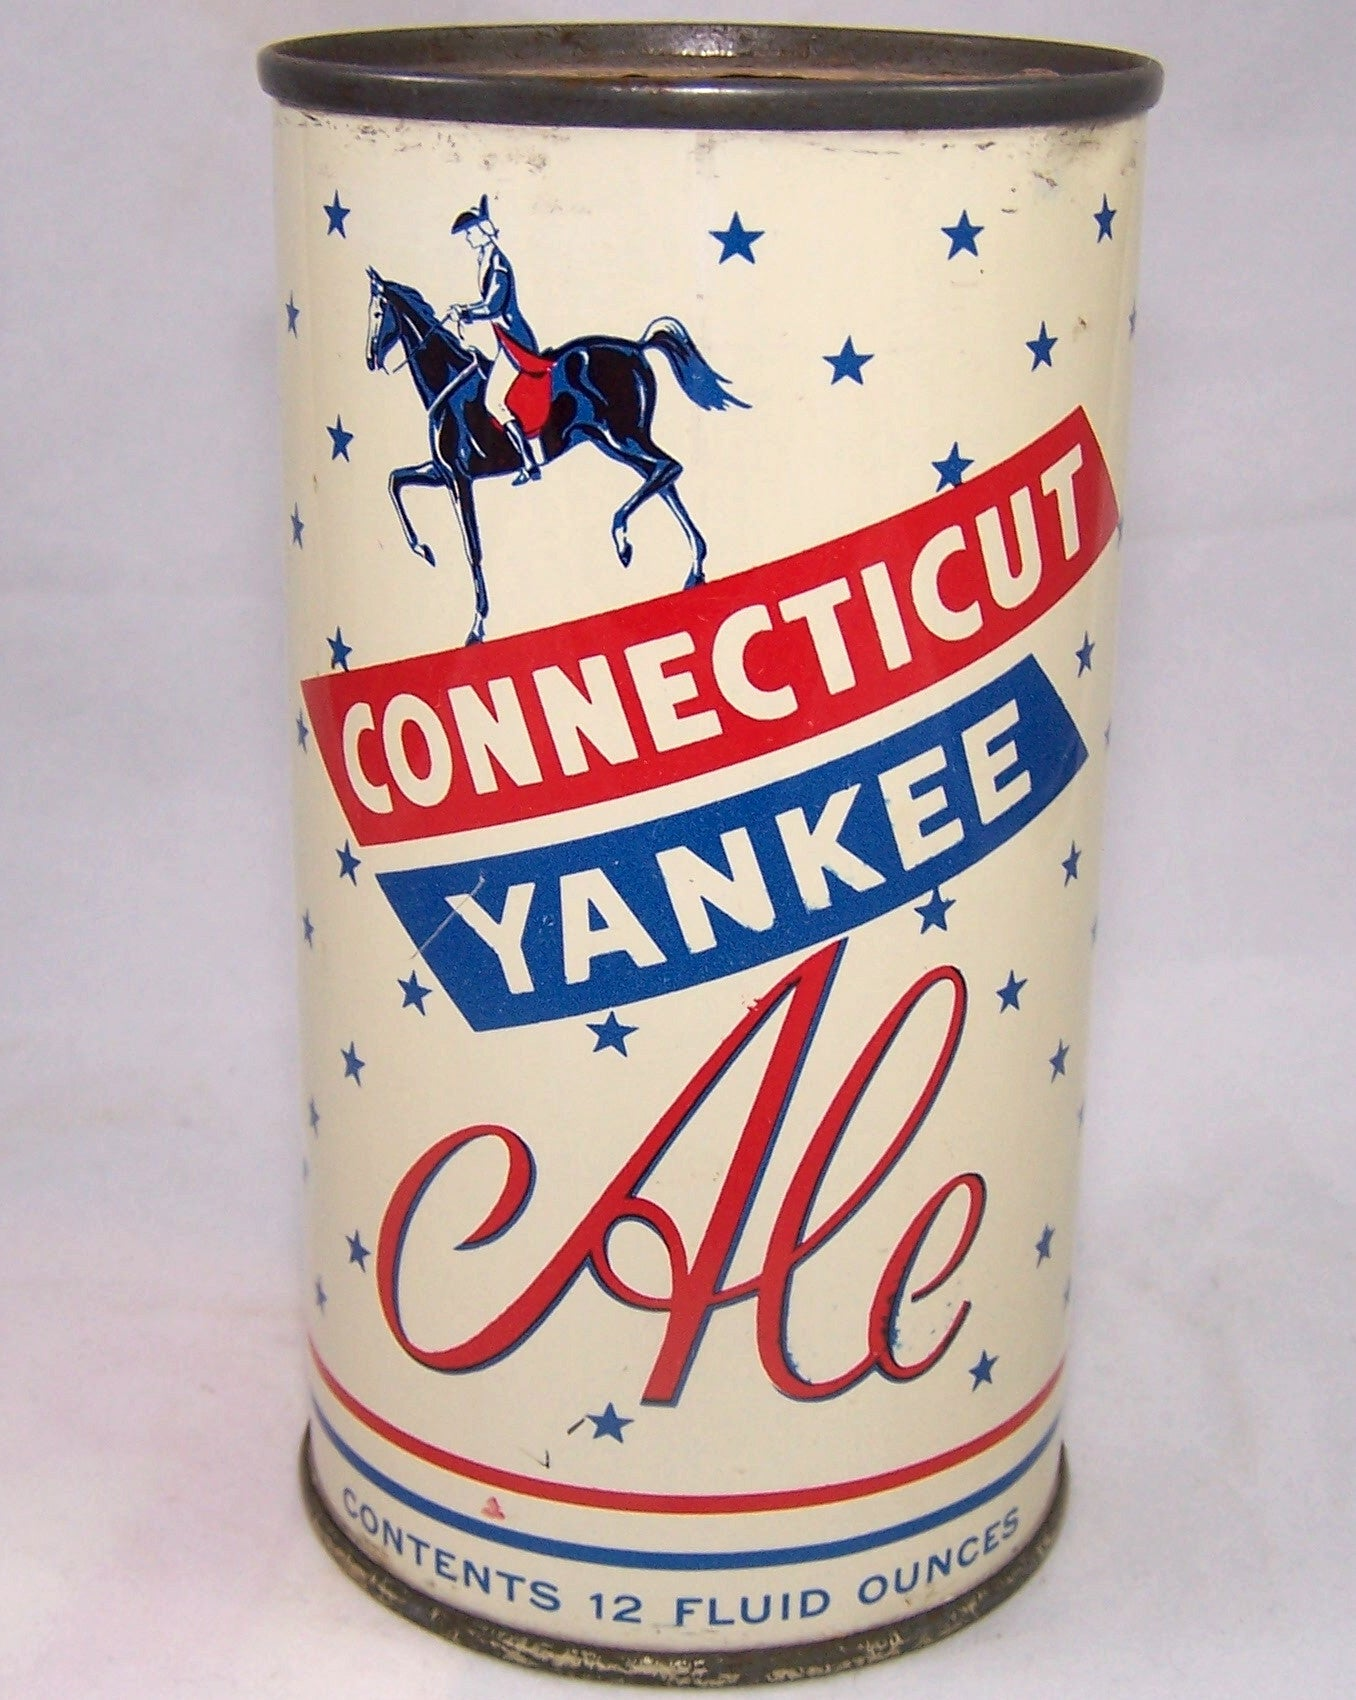 Connecticut Yankee Ale (Red) USBC 51-06, Grade 1 or better Sold on 05/20/16